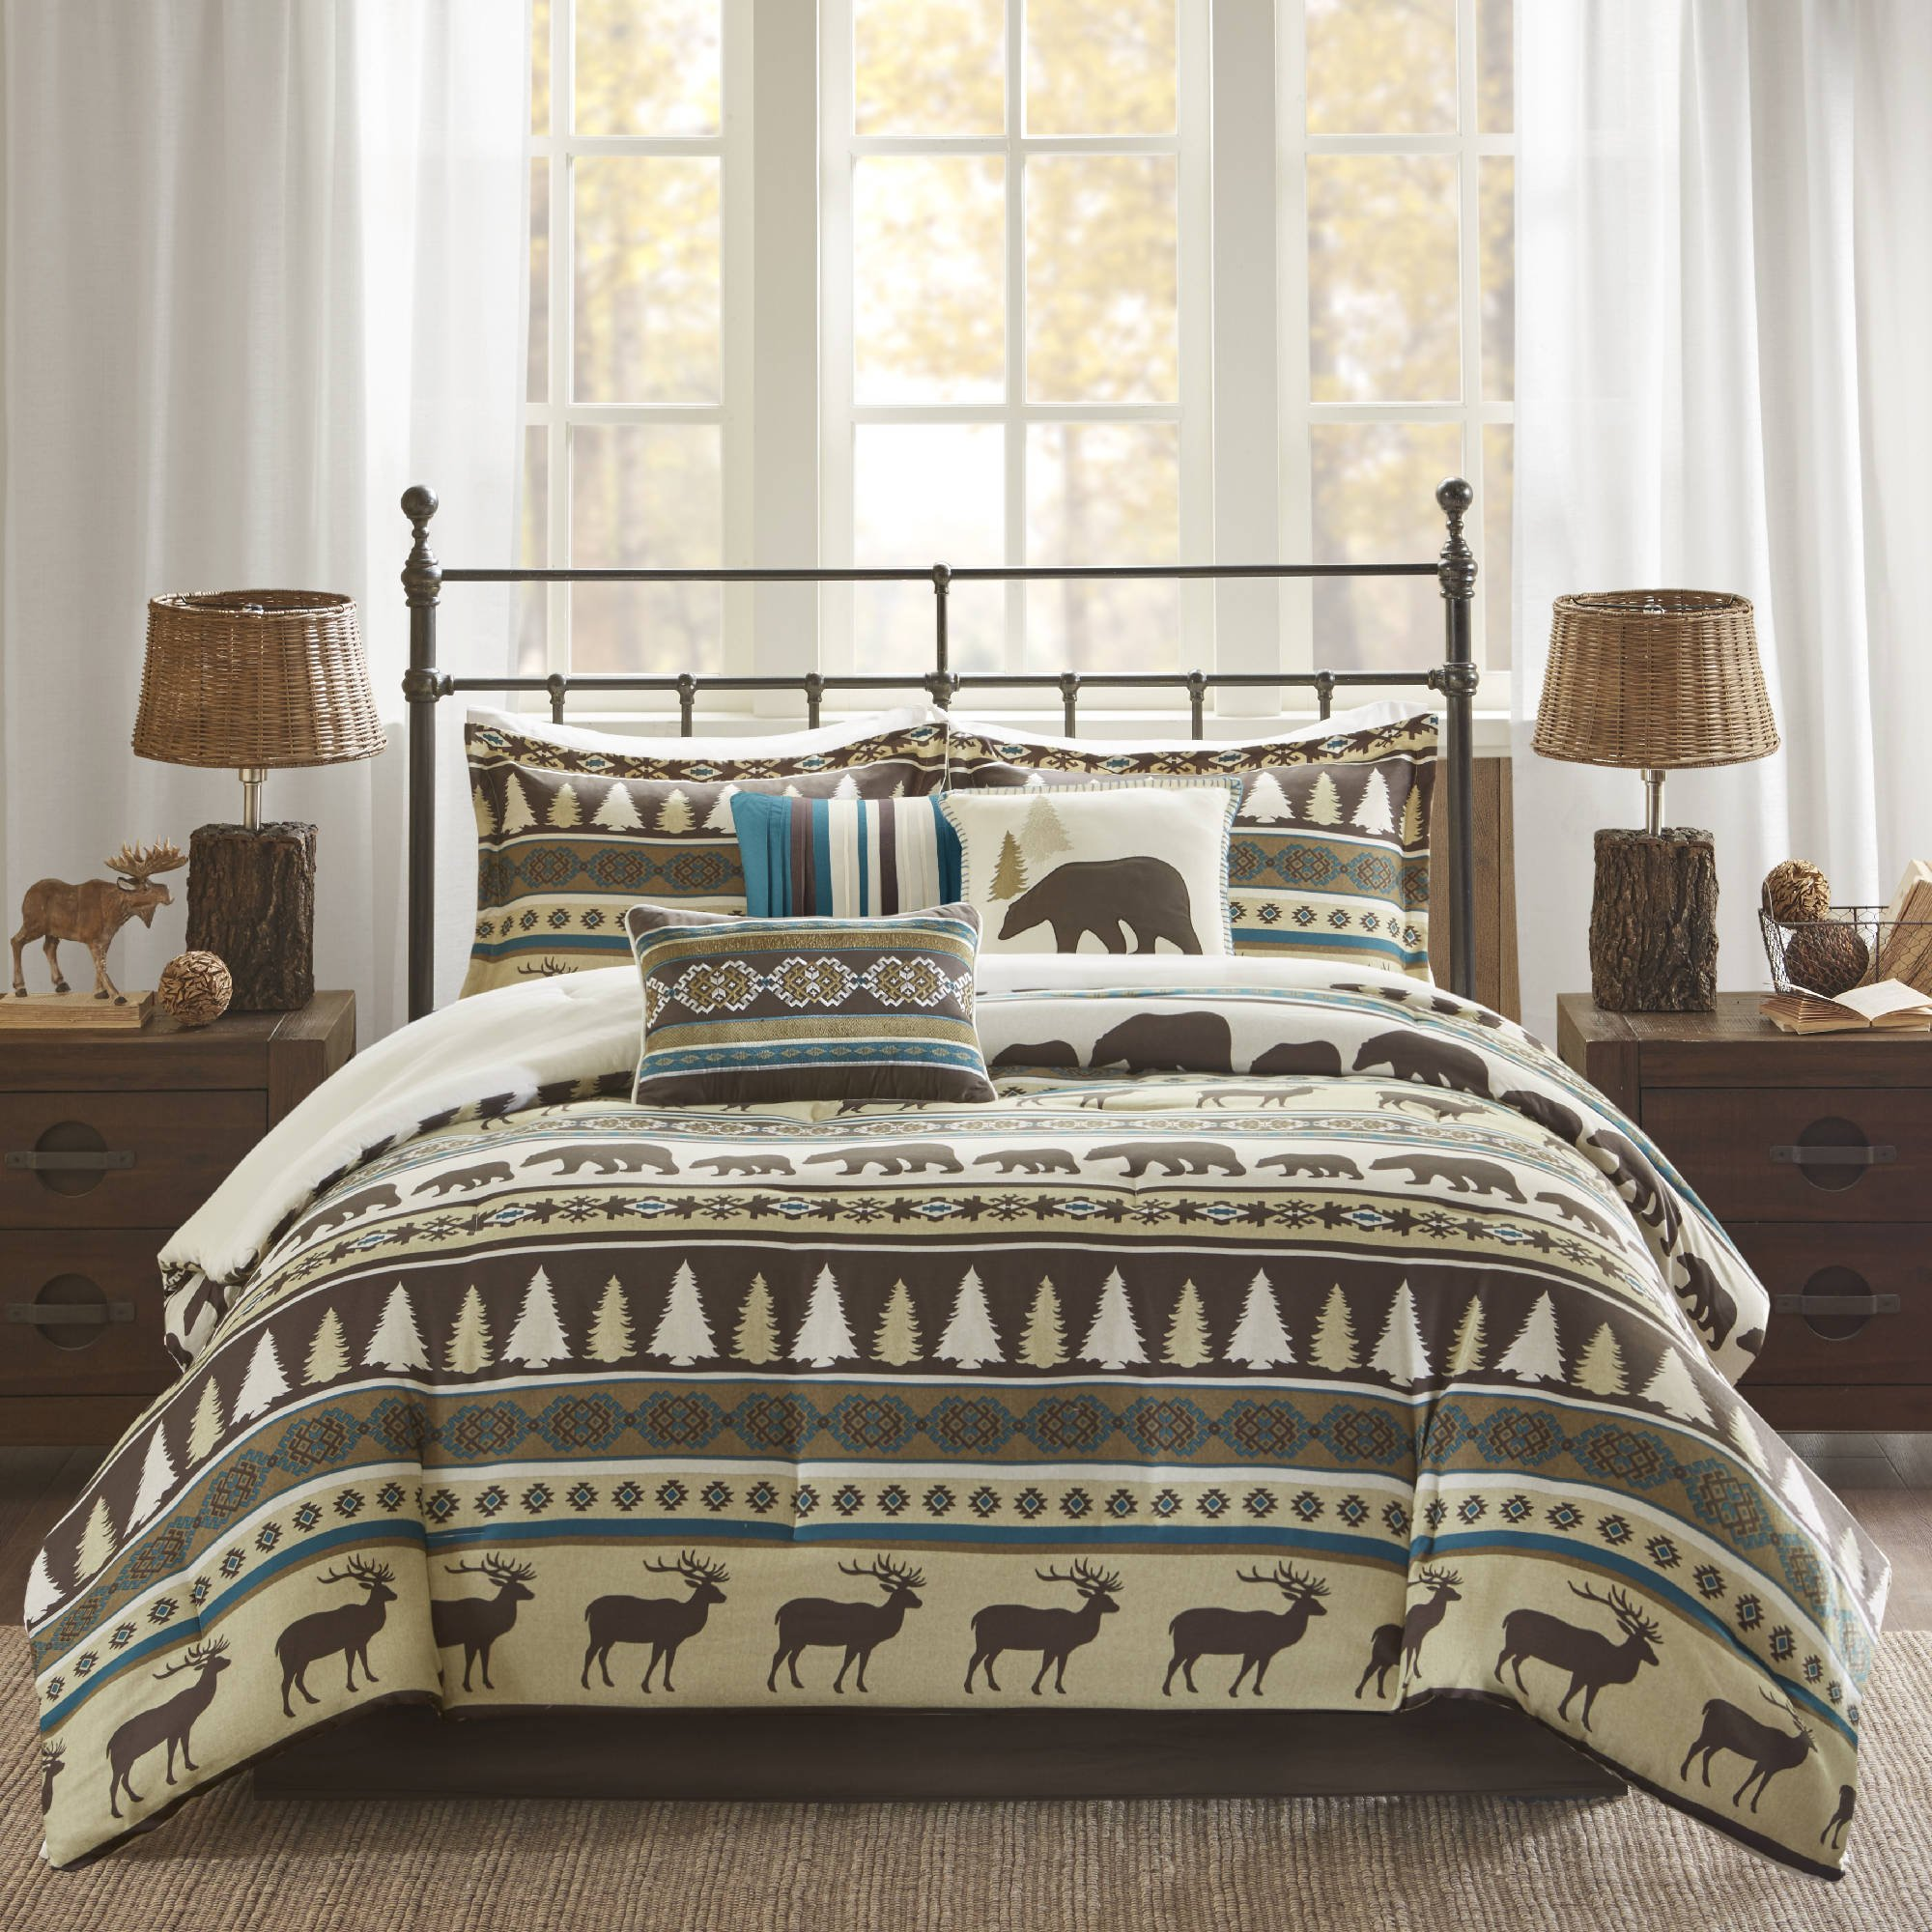 7 Piece Teal Blue White Brown Deer Pattern Comforter Cal King California Set, Hunting Bedding Bear Themed Cabin Lodge Elk Southwest Warm Cozy Overfilled Animal Print Montana Trees Butte, Polyester